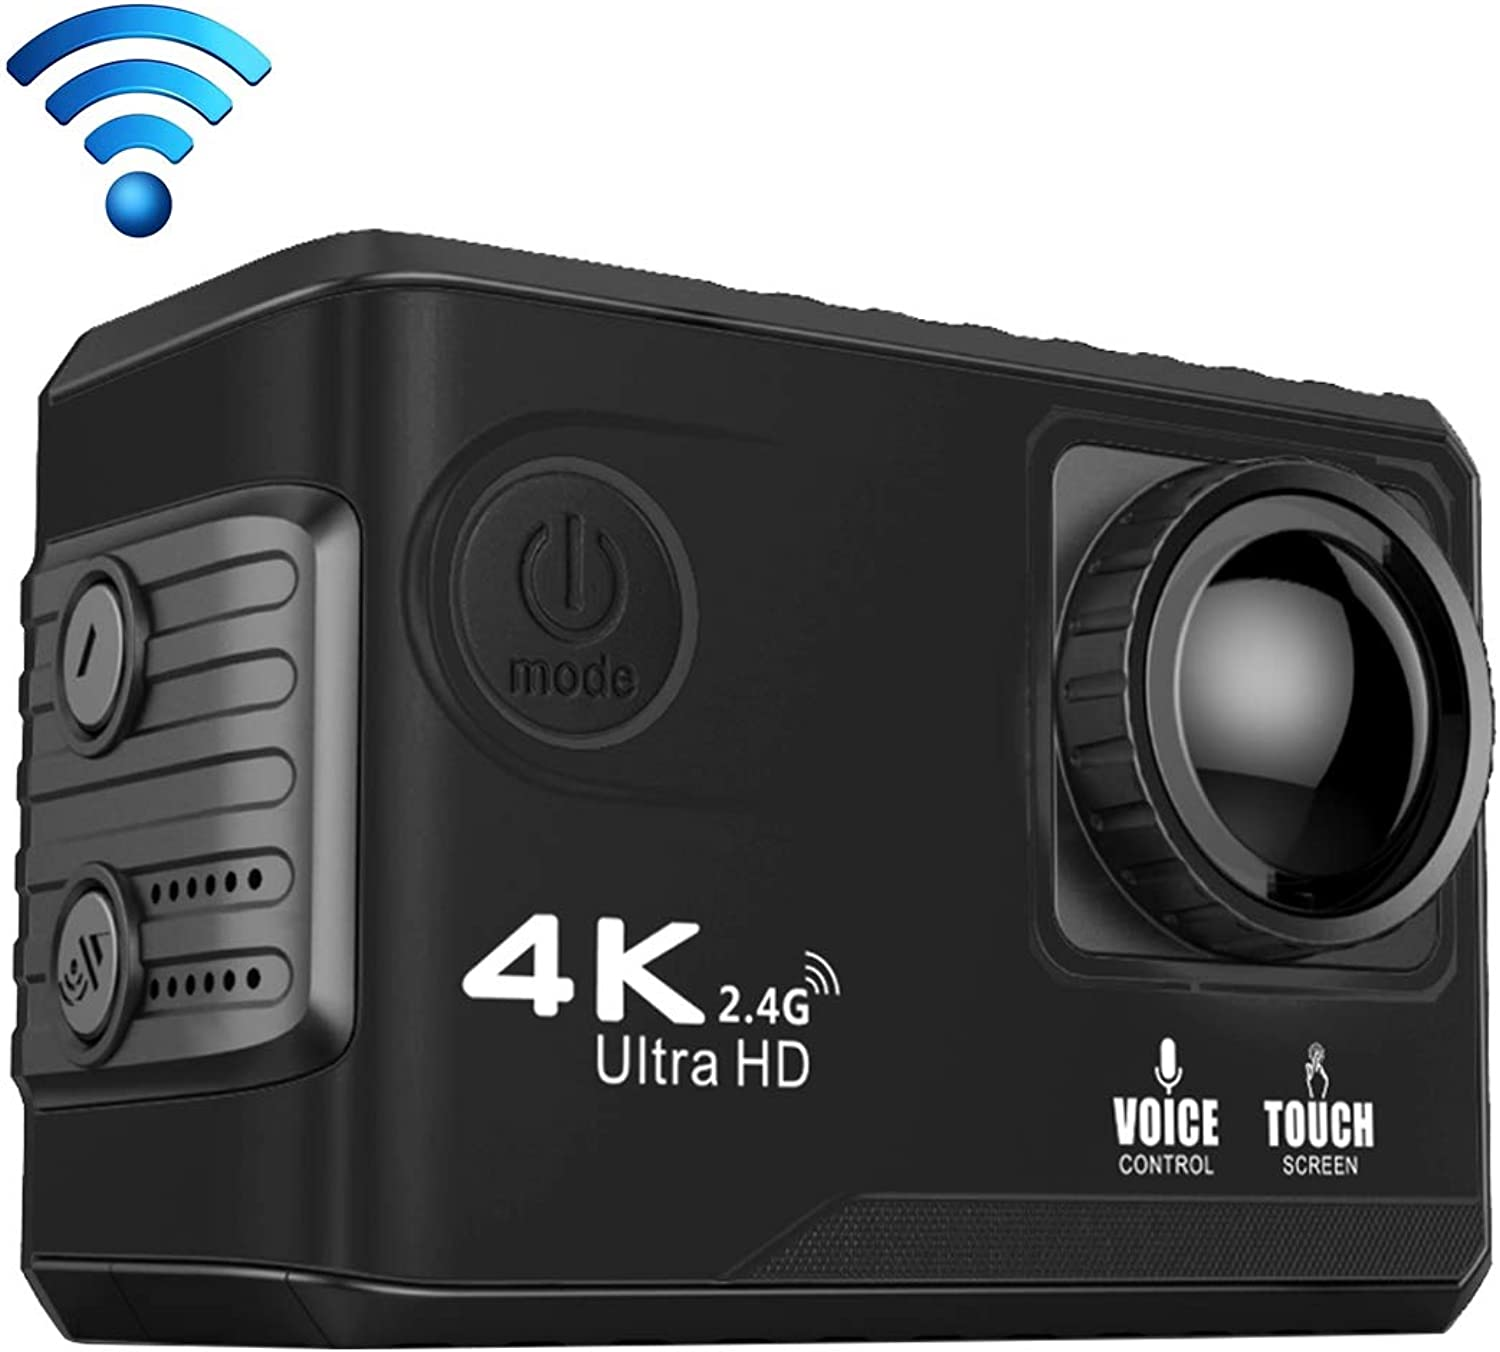 Sports Camera S100 Pro 4K WiFi Action Camera with Waterproof Housing Case, 2.0 inch Screen, 170 Degrees Wide Angle(Black) (color   Black)